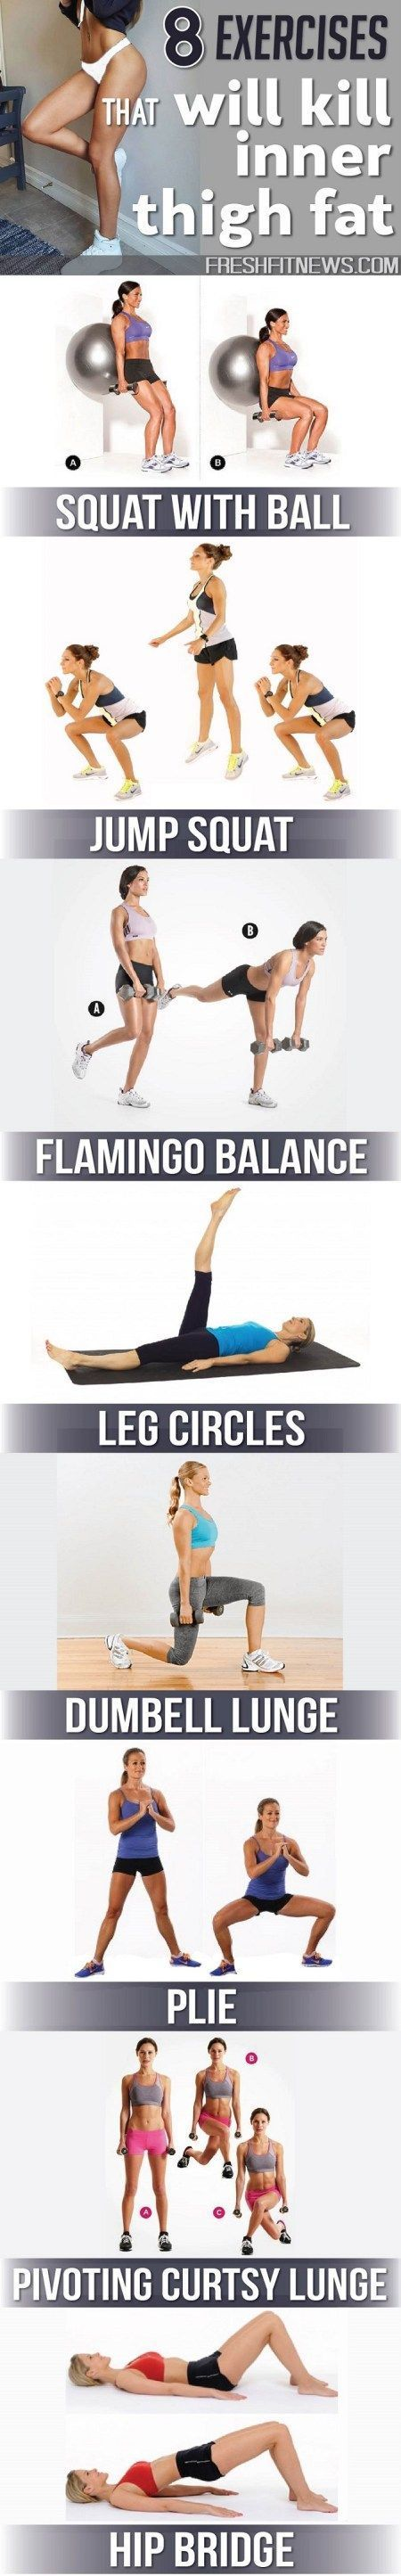 8 Exercises That Will Kill Inner Thigh Fat